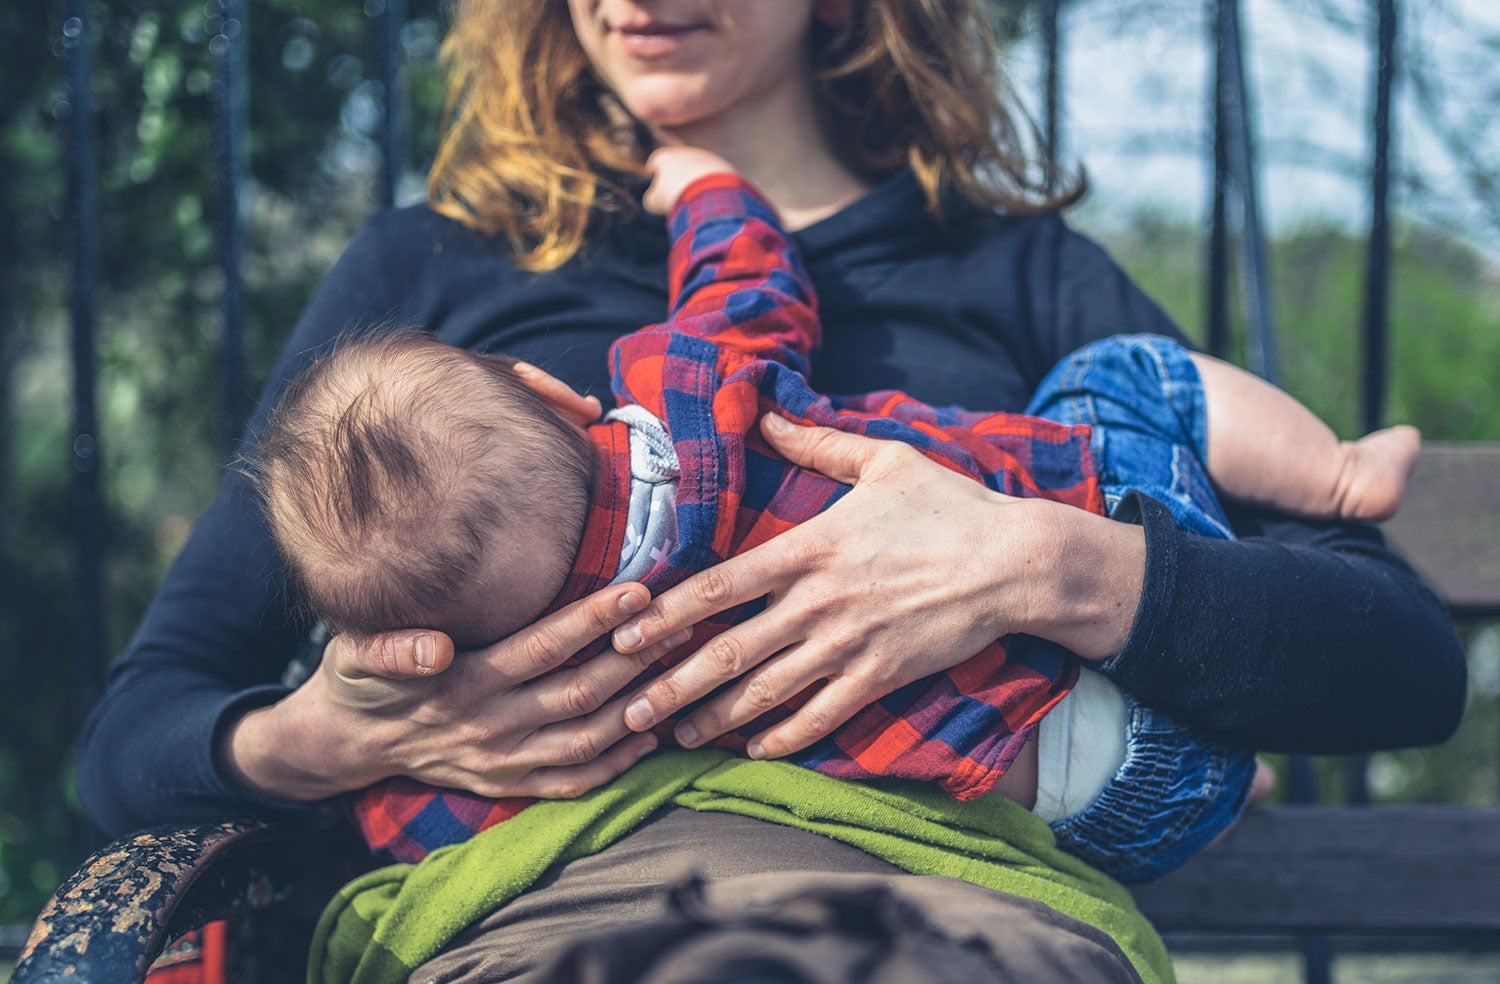 a woman holding a newborn baby and breastfeeding them in the outdoors